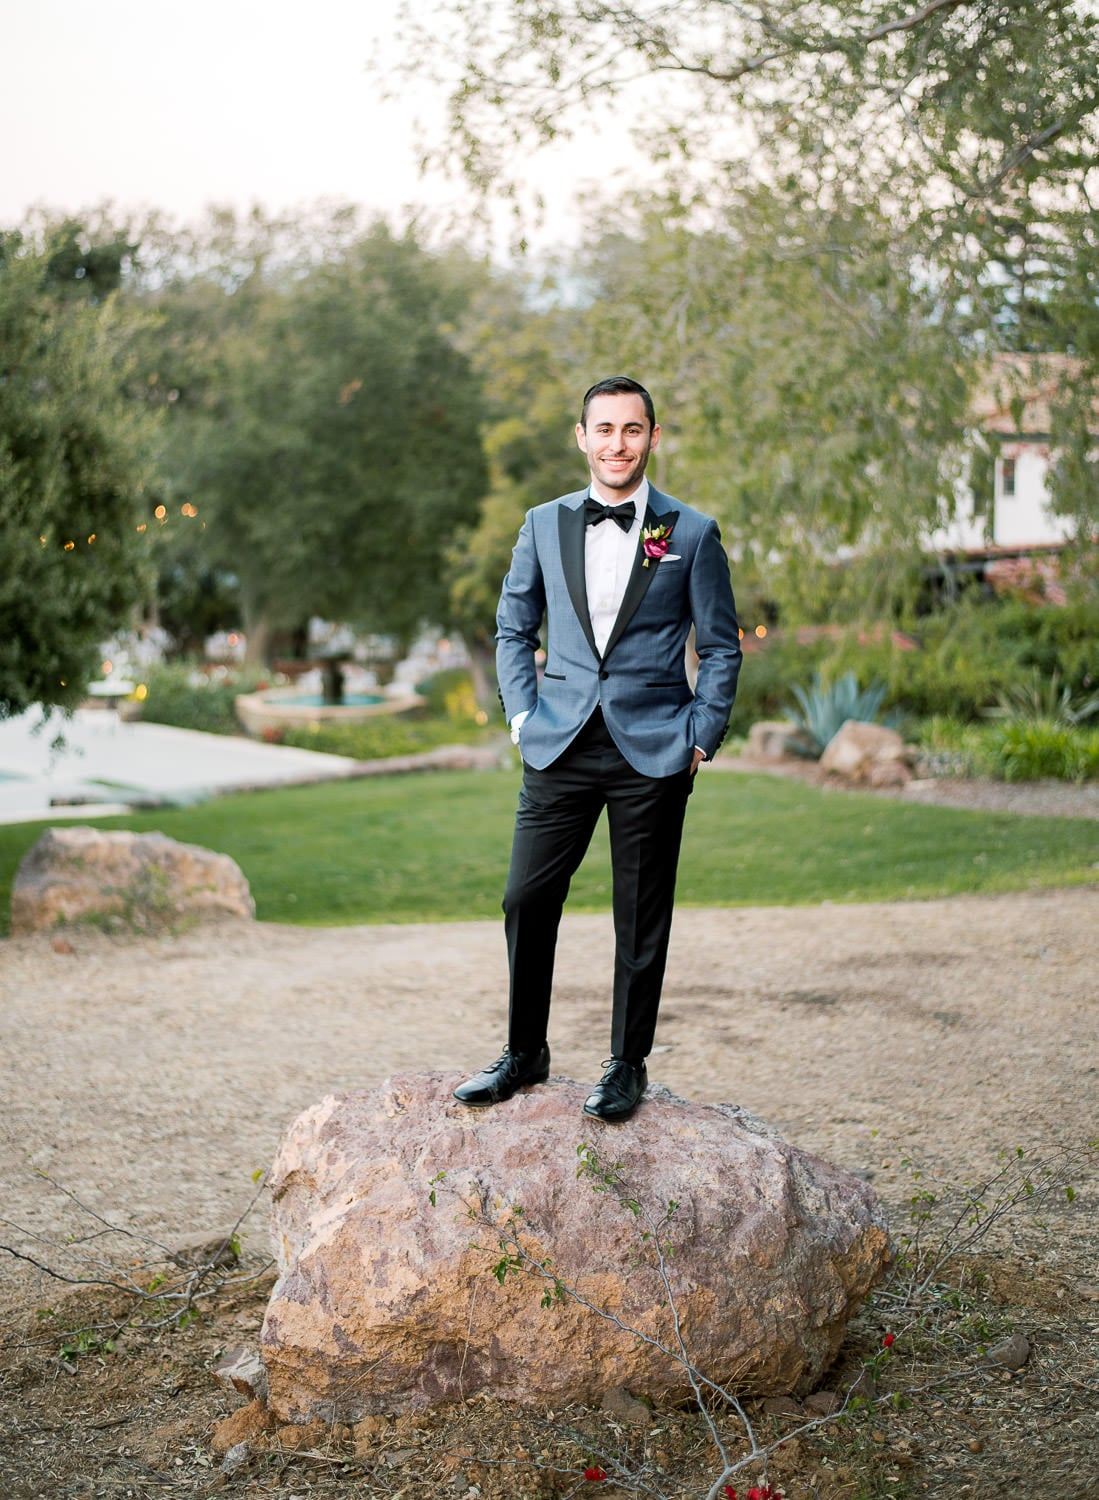 Groom-Wedding-Style-Greg-Ross